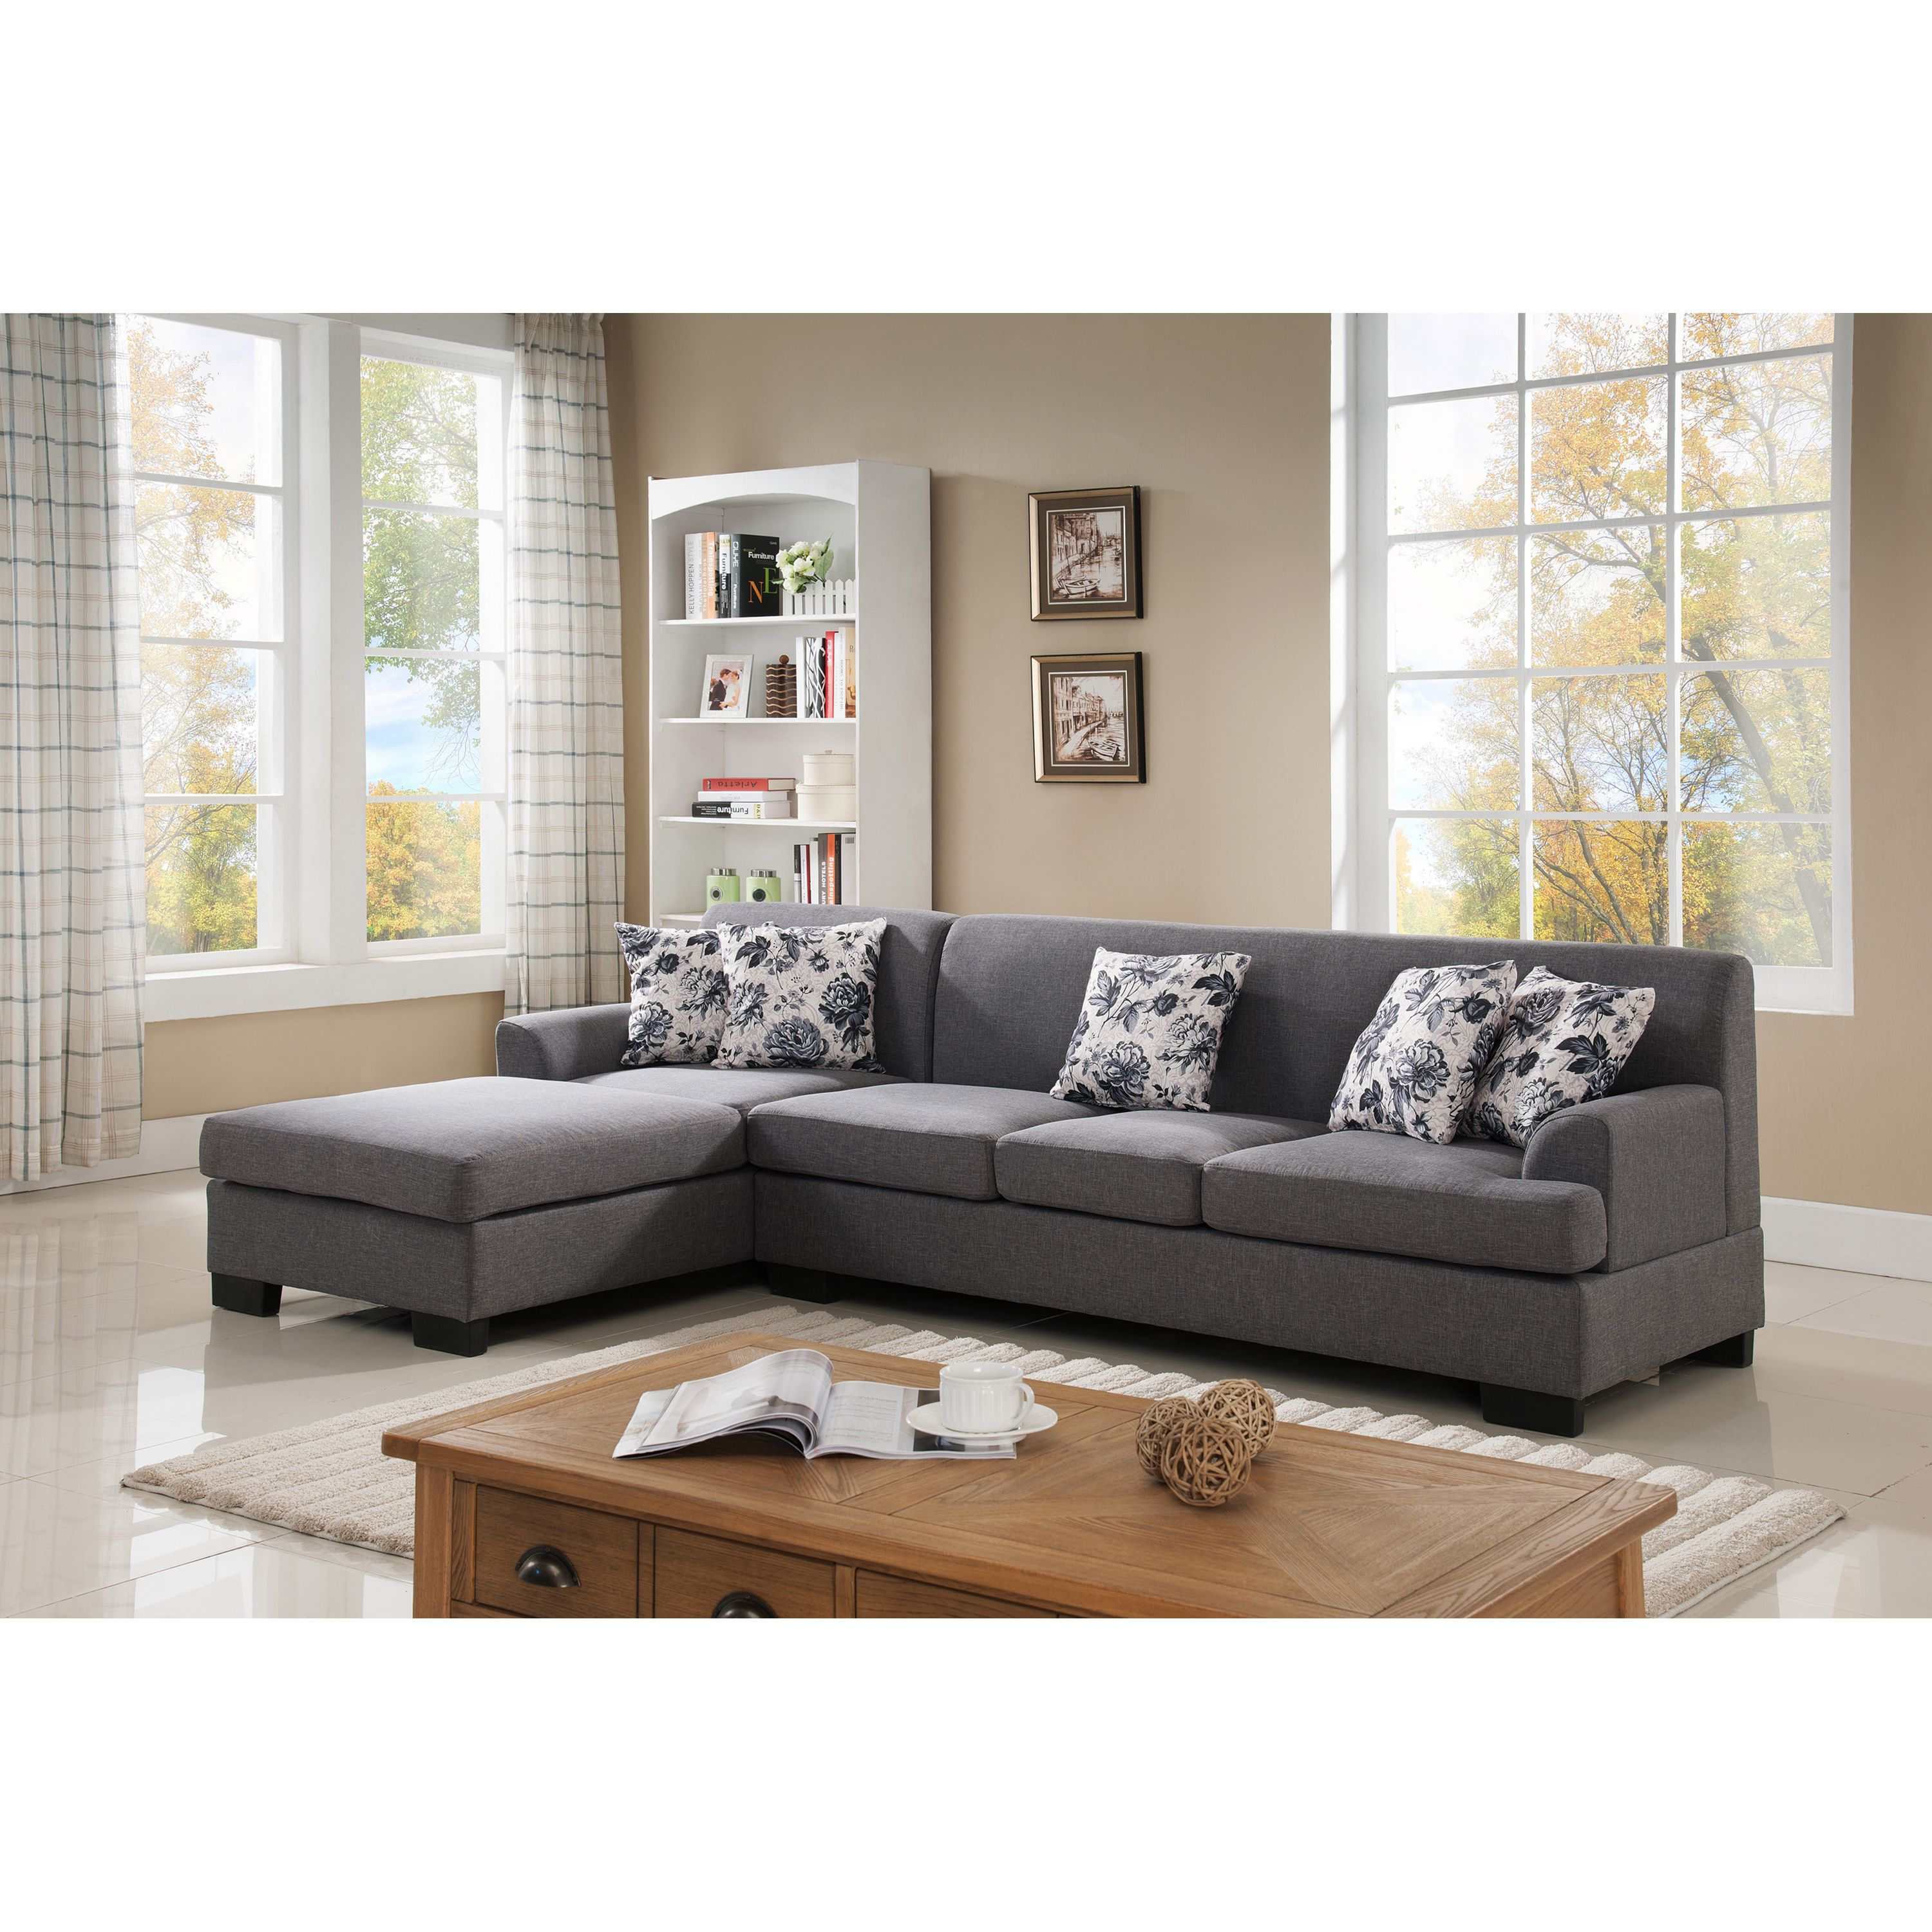 This couch offers the optimal comfort and supports your need for